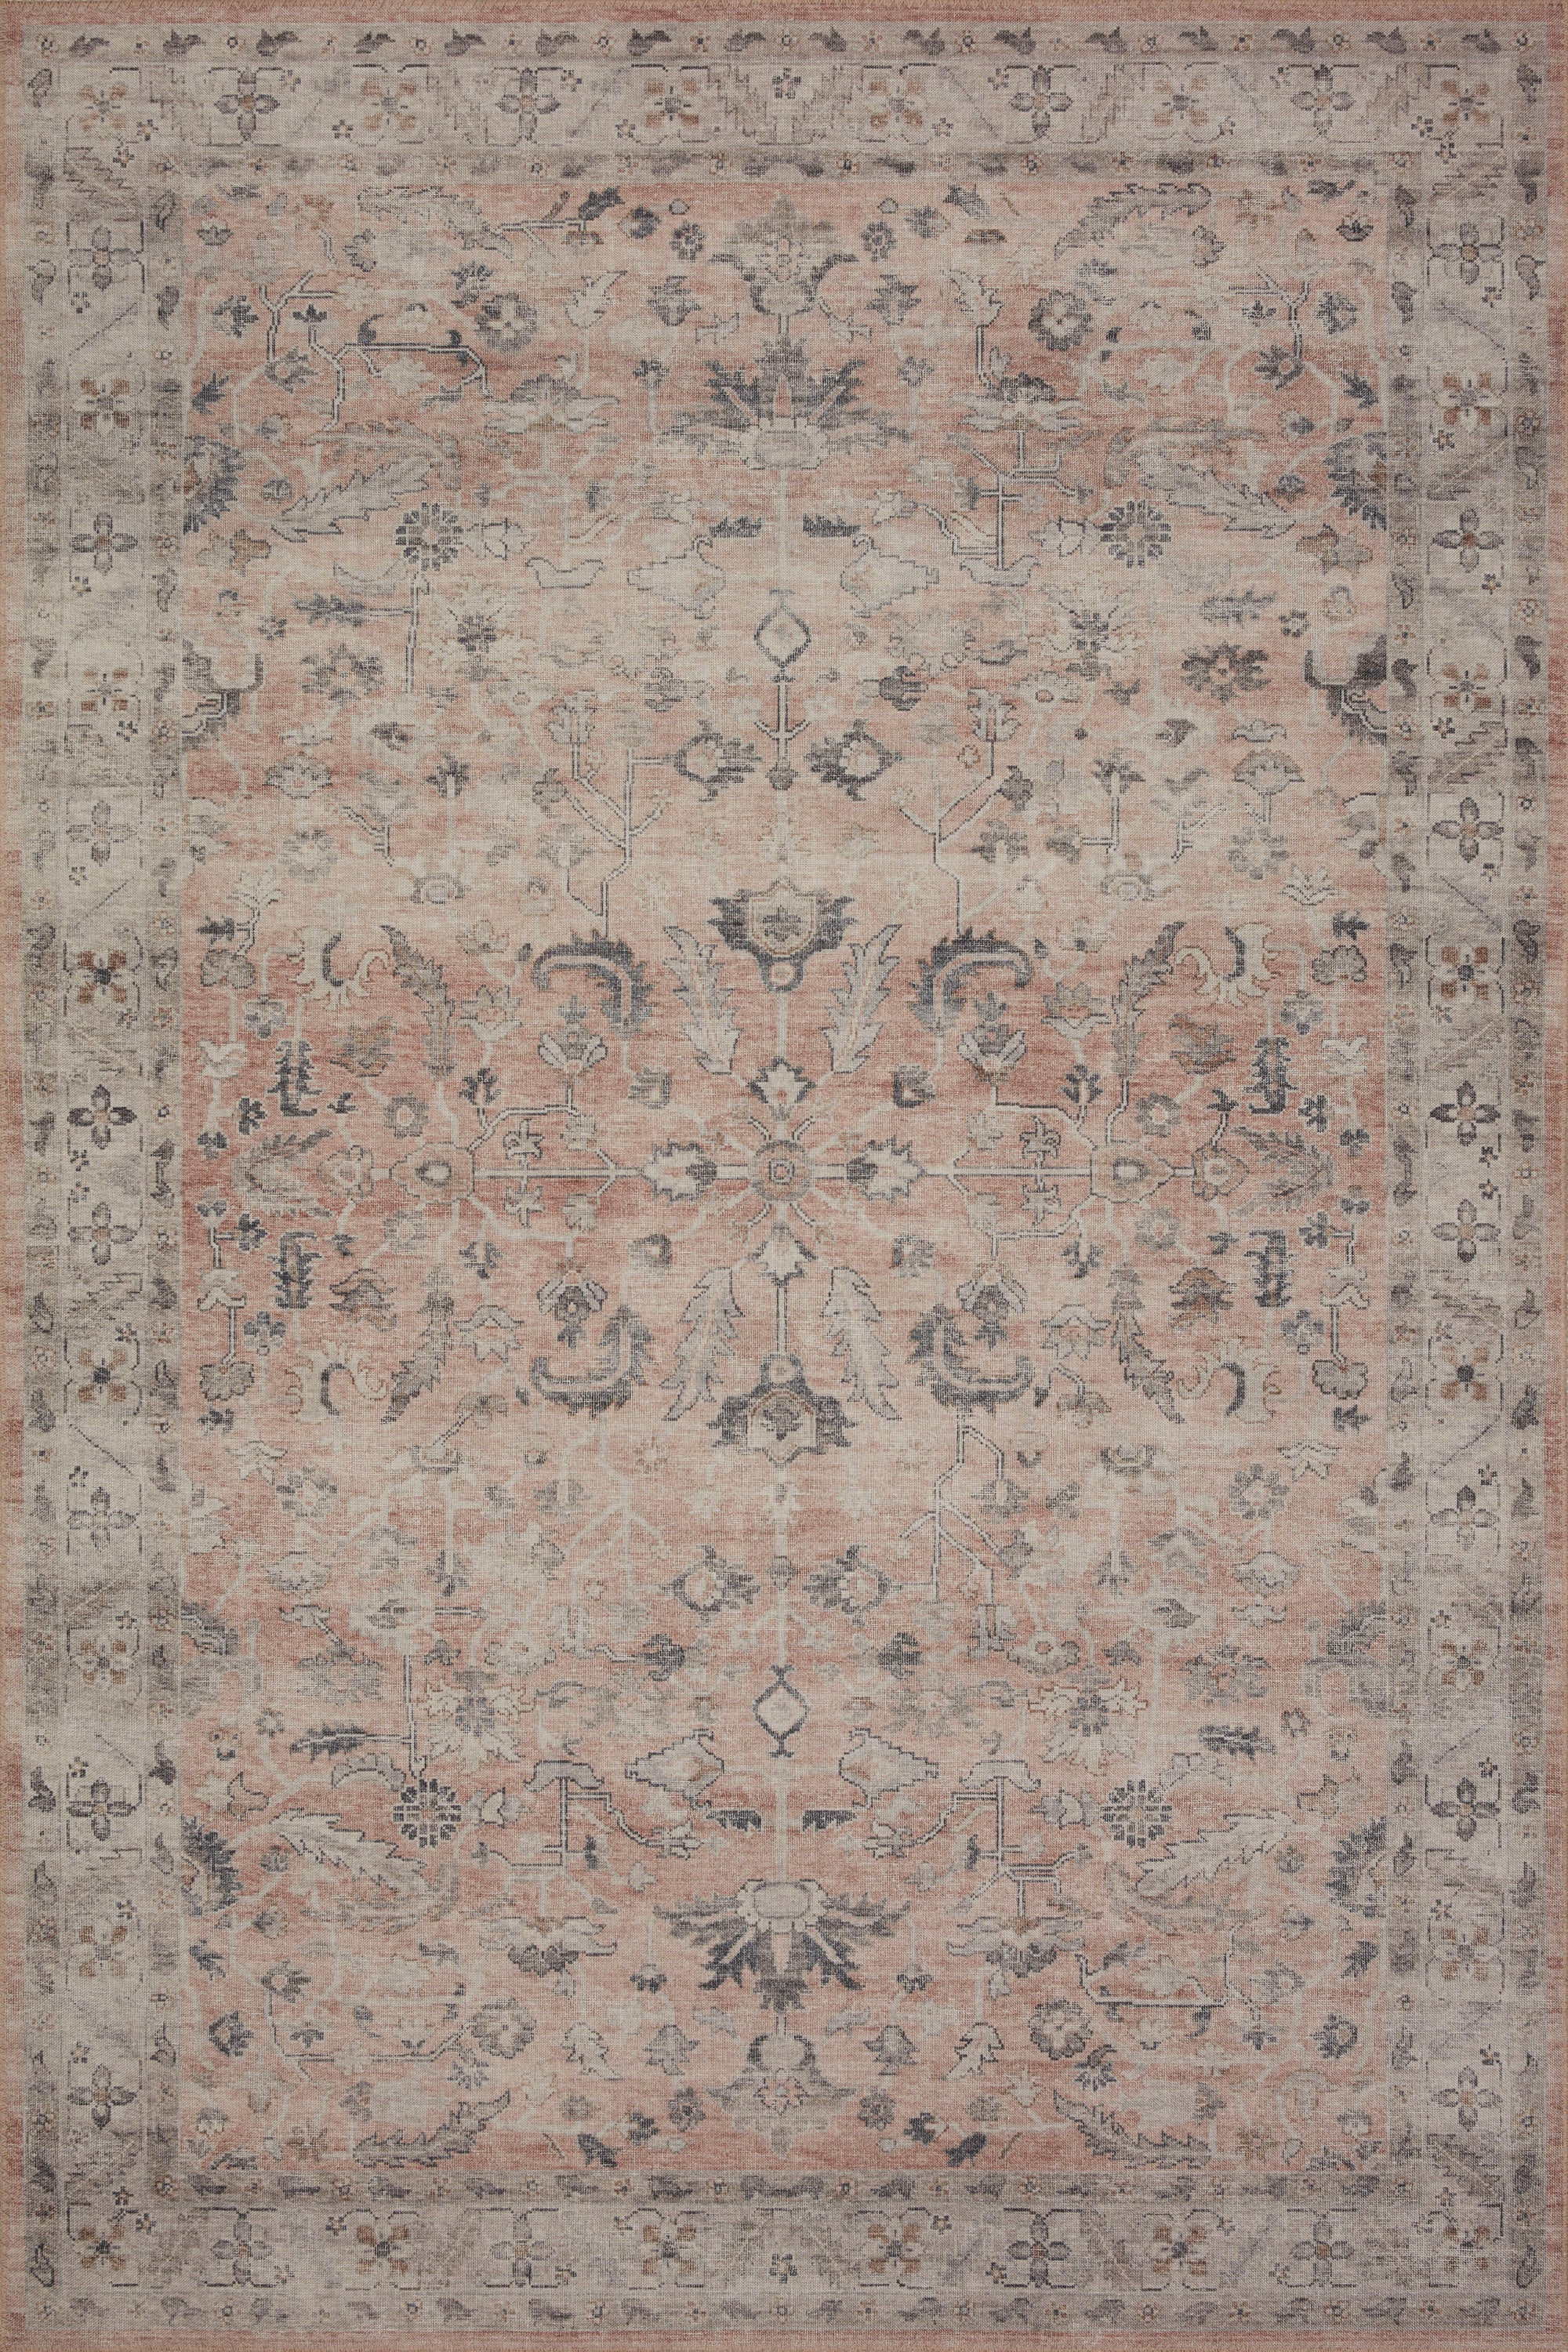 In Store Rug - Hathaway Blush / Multi